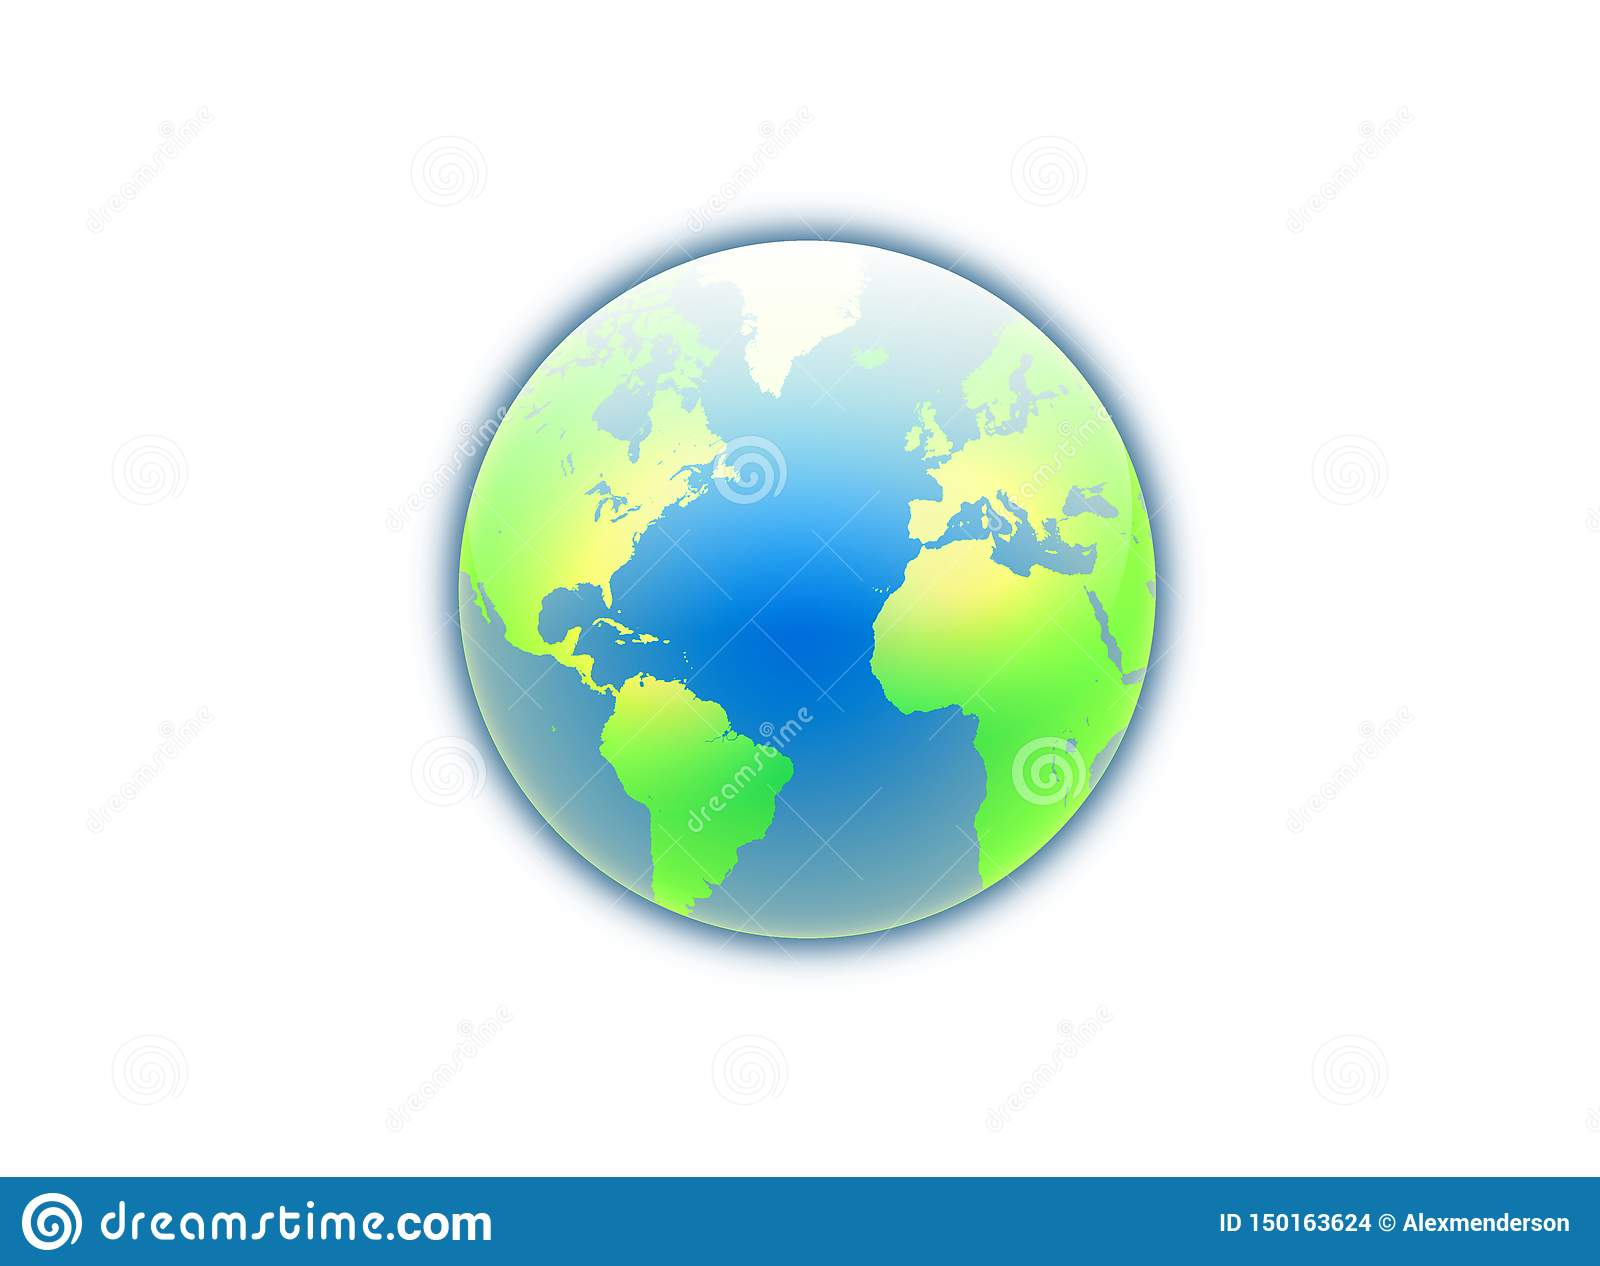 Picture of: World Globe Map With Continents And Oceans Stock Photo Illustration Of Geography Asia 150163624